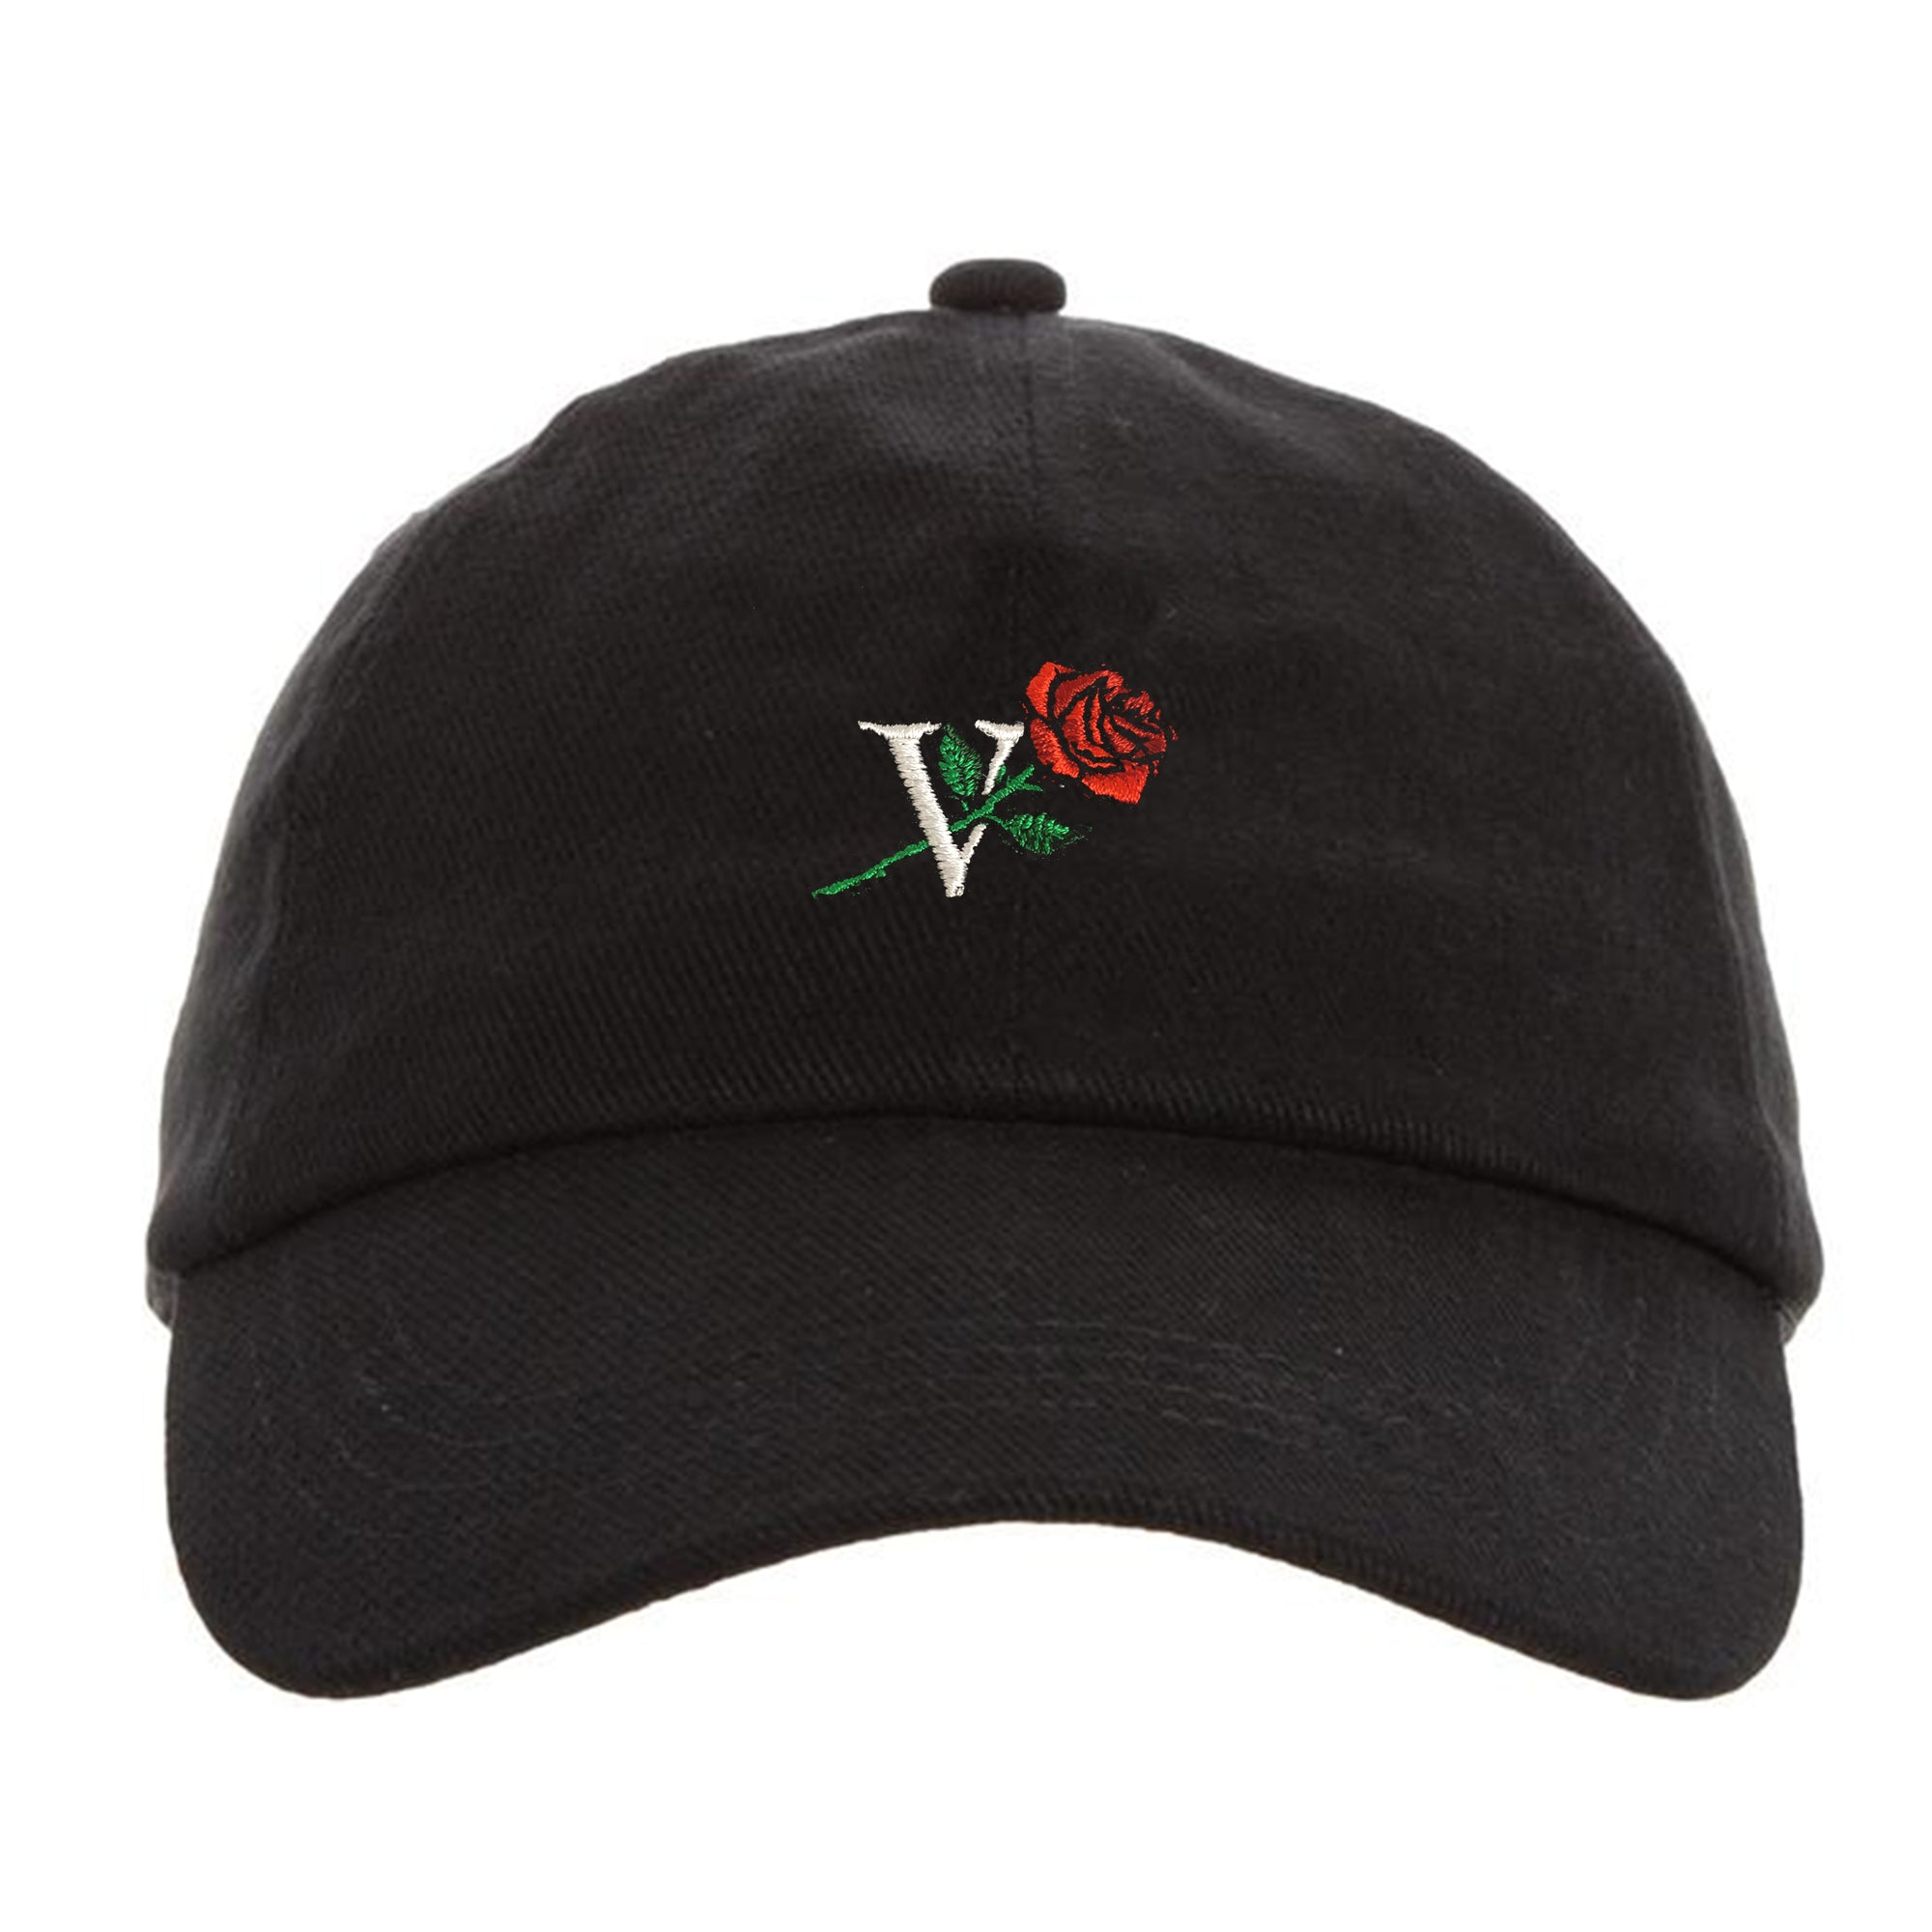 V ROSE CAP - BLACK